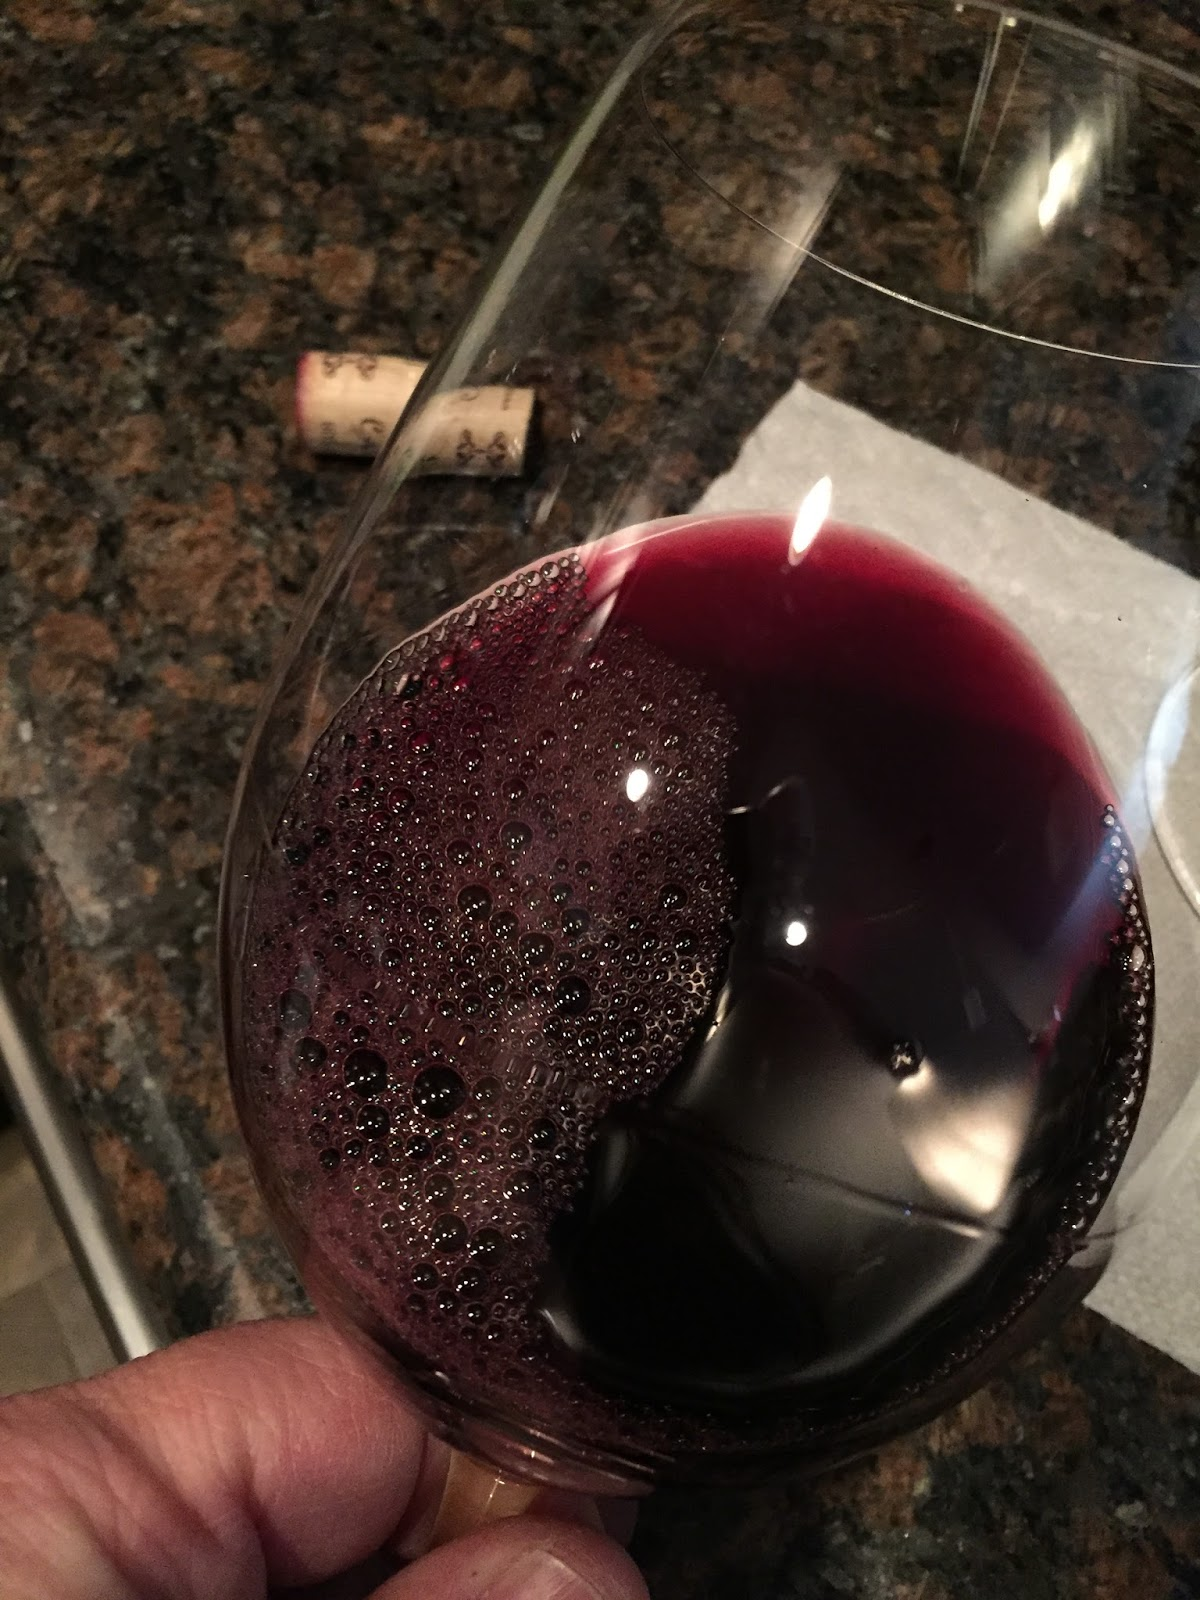 Wino 4 Life: Weekly Wine Review - California Red - 2013